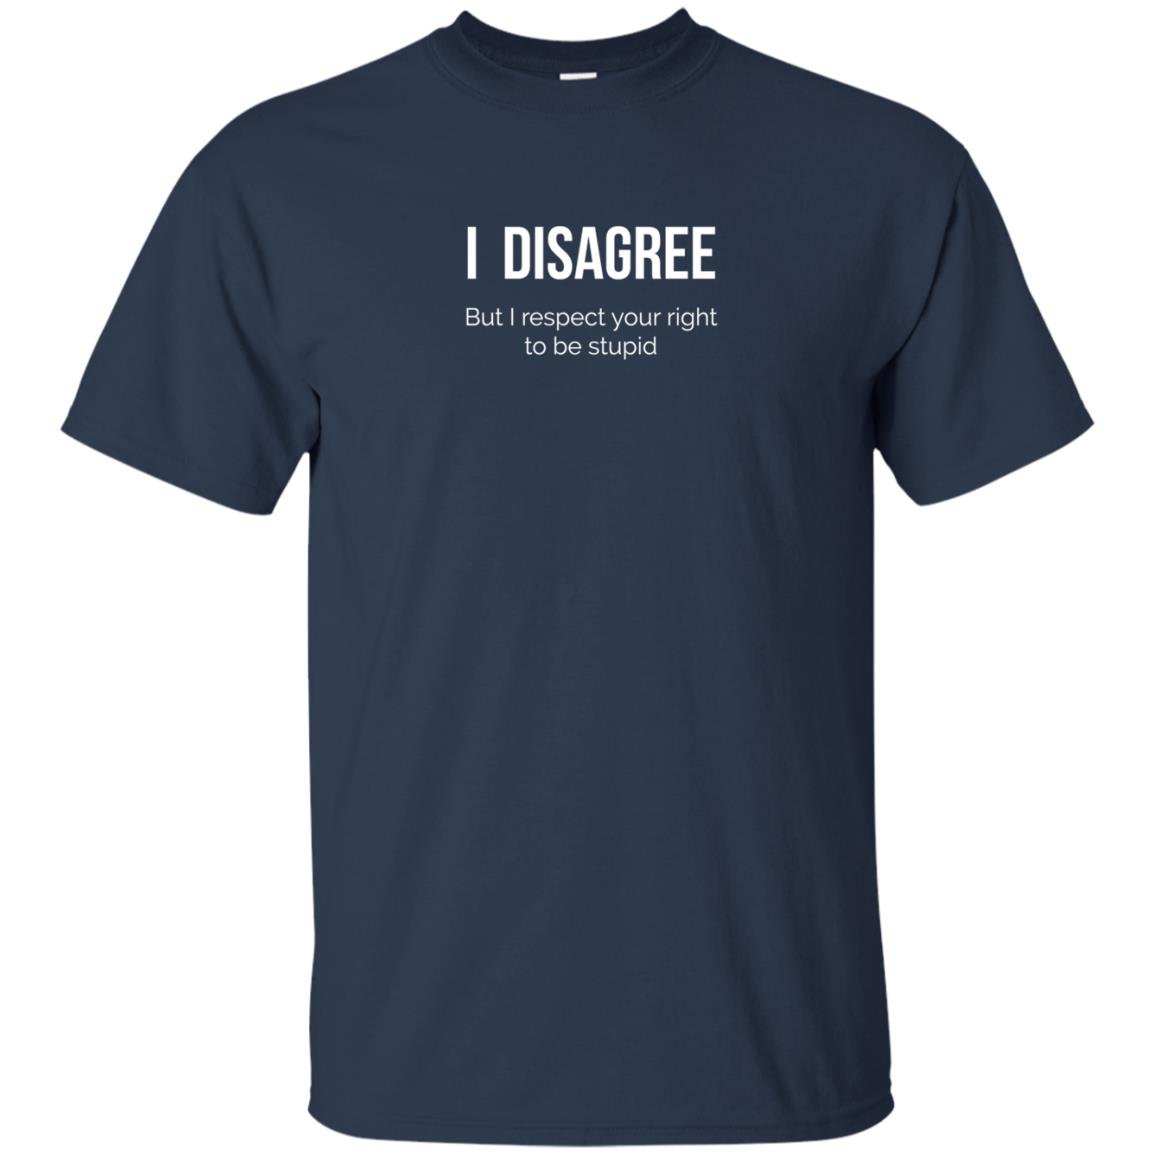 image 2204 - I Disagree But I Respect Your Right To Be Stupid shirt